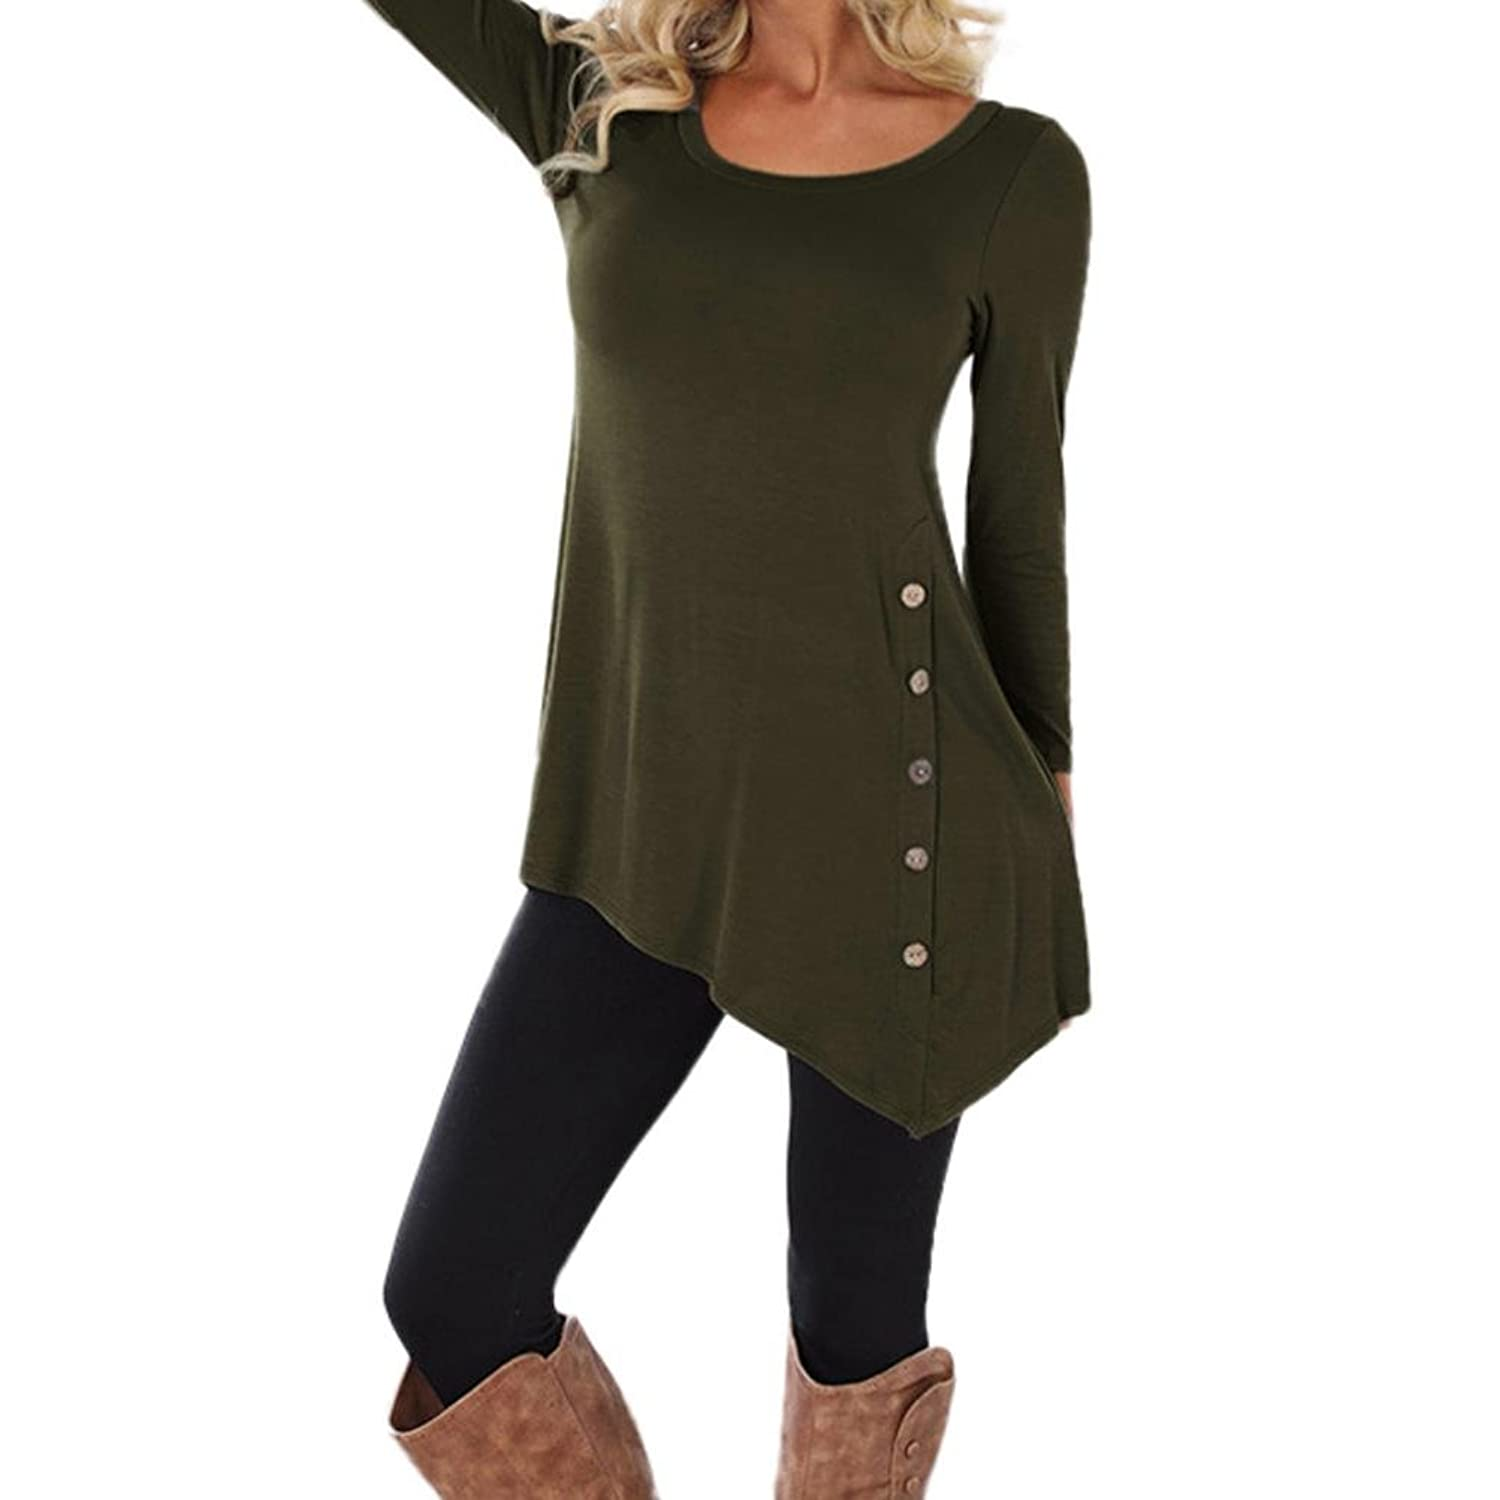 Lightning Deals Tunic Top,ZYooh Women 3/4 Sleeve Loose Button Trim Blouse Solid Color Round Neck Blouse T-Shirt